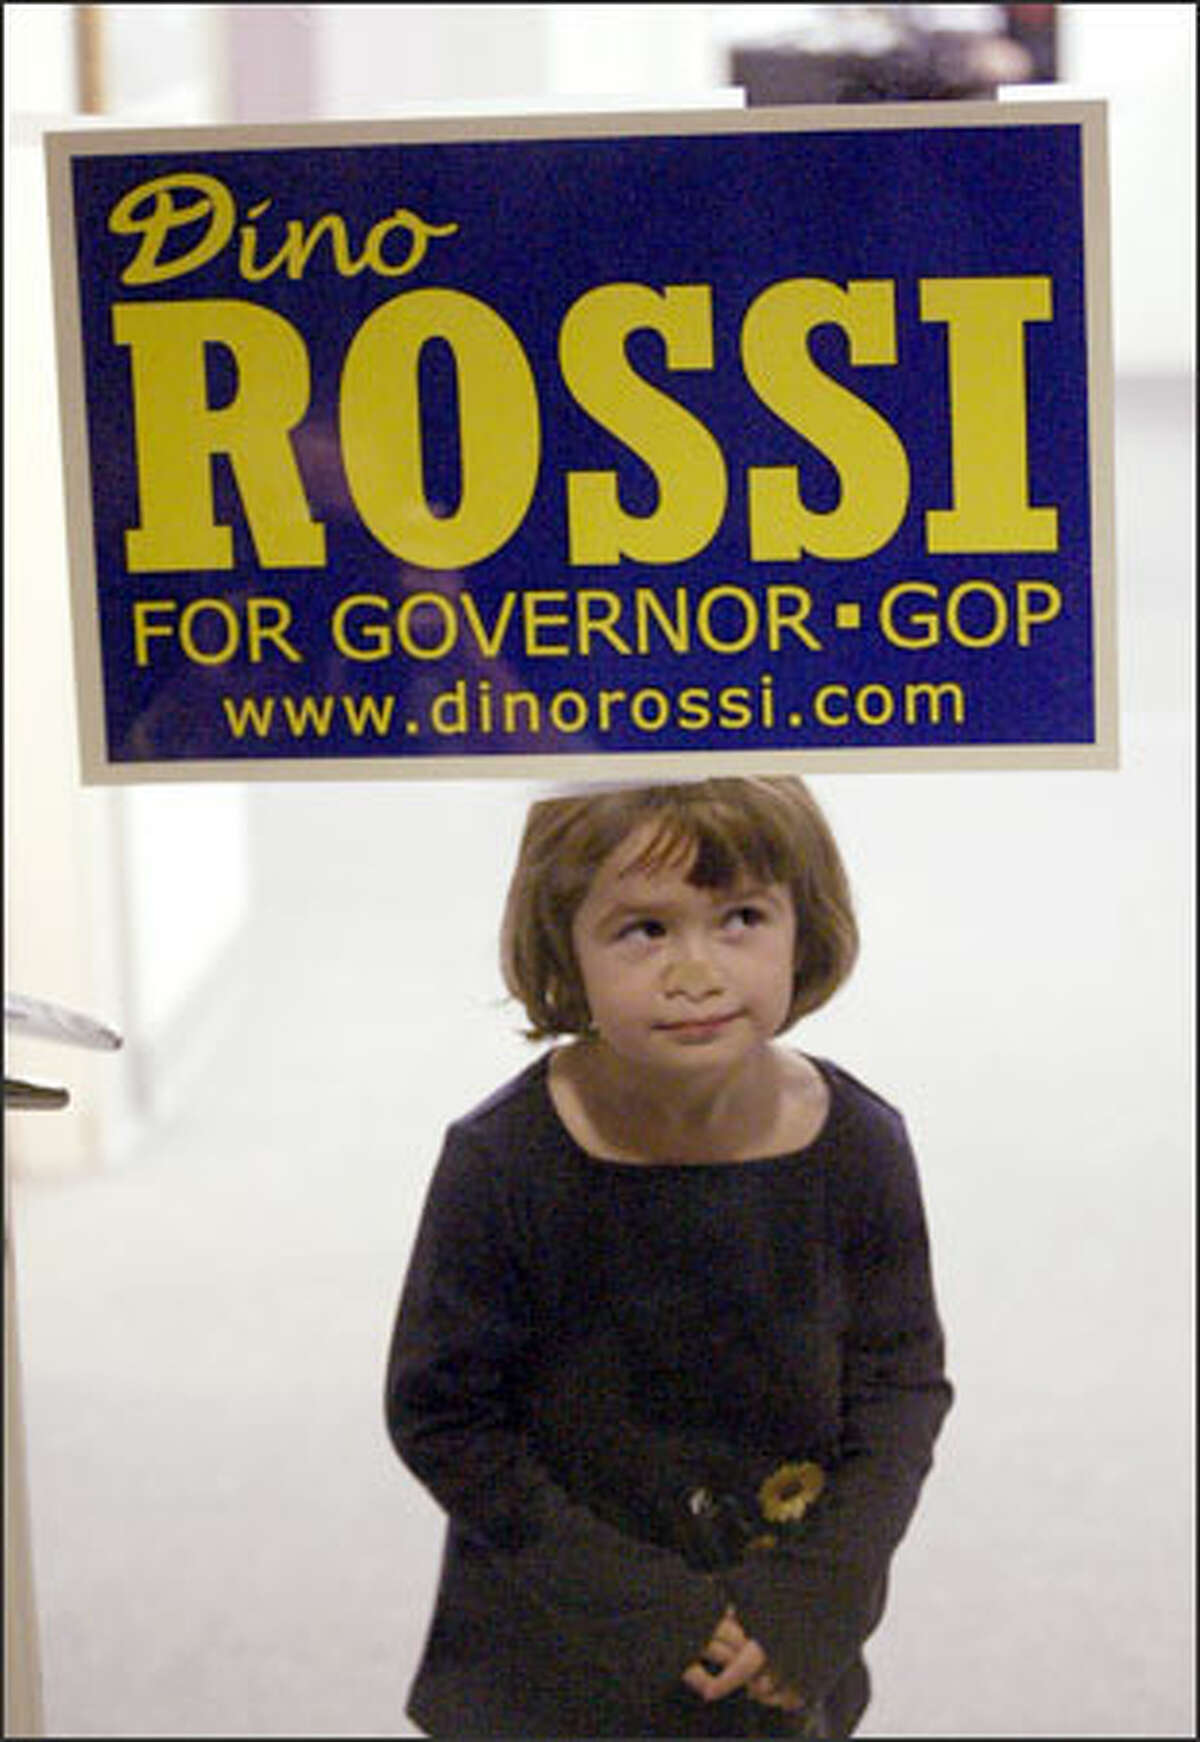 Jillian Rossi, playing at the headquarters of her father, Republican gubernatorial candidate Dino Rossi, appears to say he won by a nose. In the final tally, Rossi led by 261 votes -- but the narrow margin of victory mandates a recount under state law.